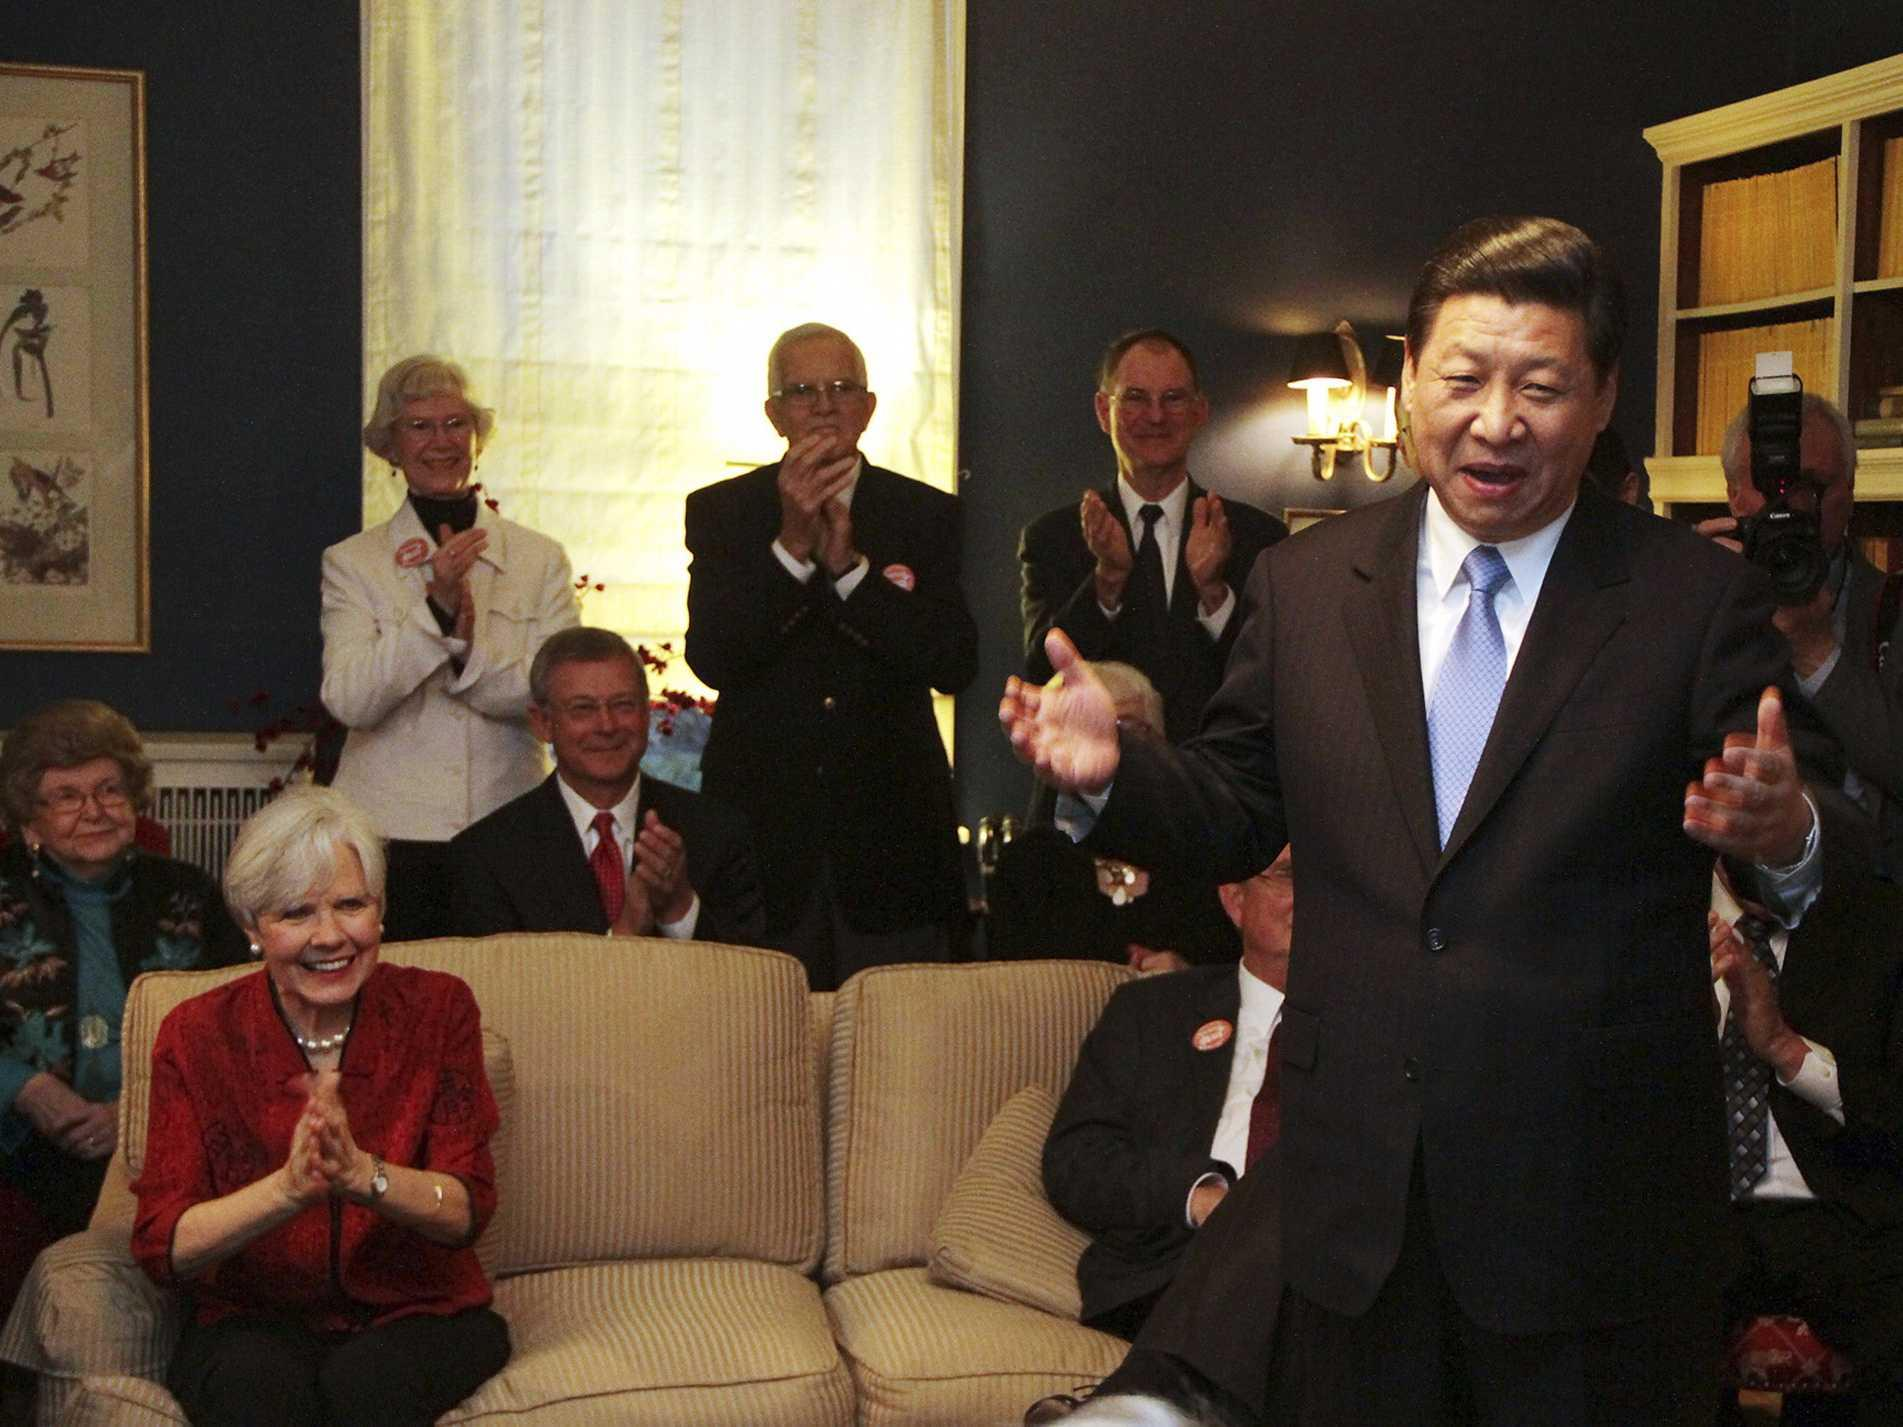 The Iowa mom who hosted Xi Jinping in the 80s said 'no one in their right mind would ever think' he'd become president of a country